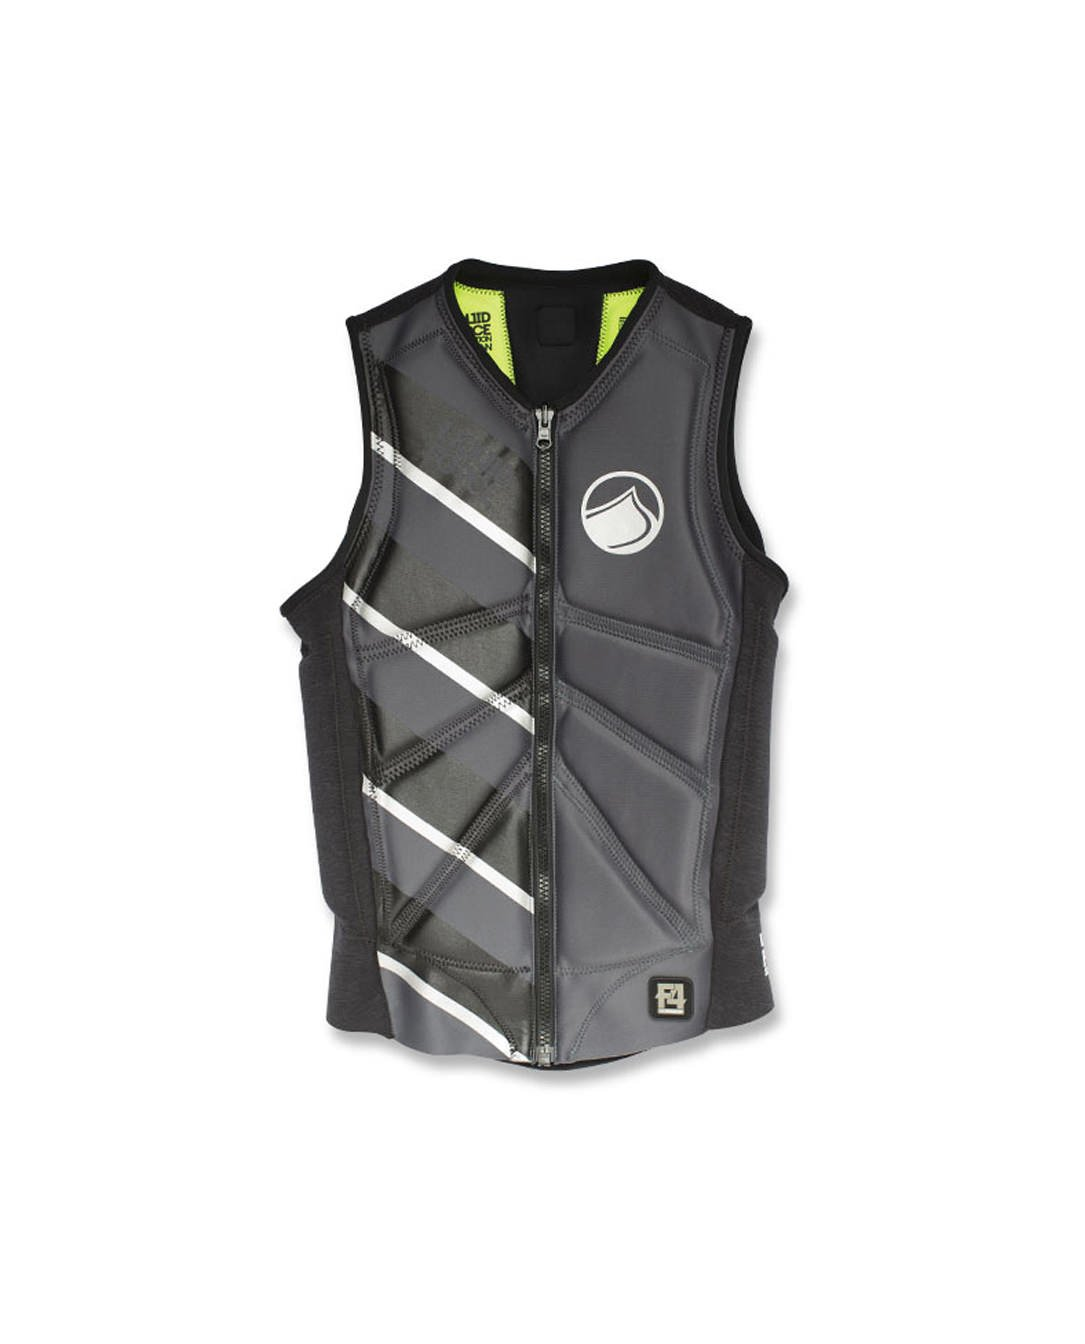 LIQUID FORCE Z-CARDIGAN VEST - LM BOARD STORE